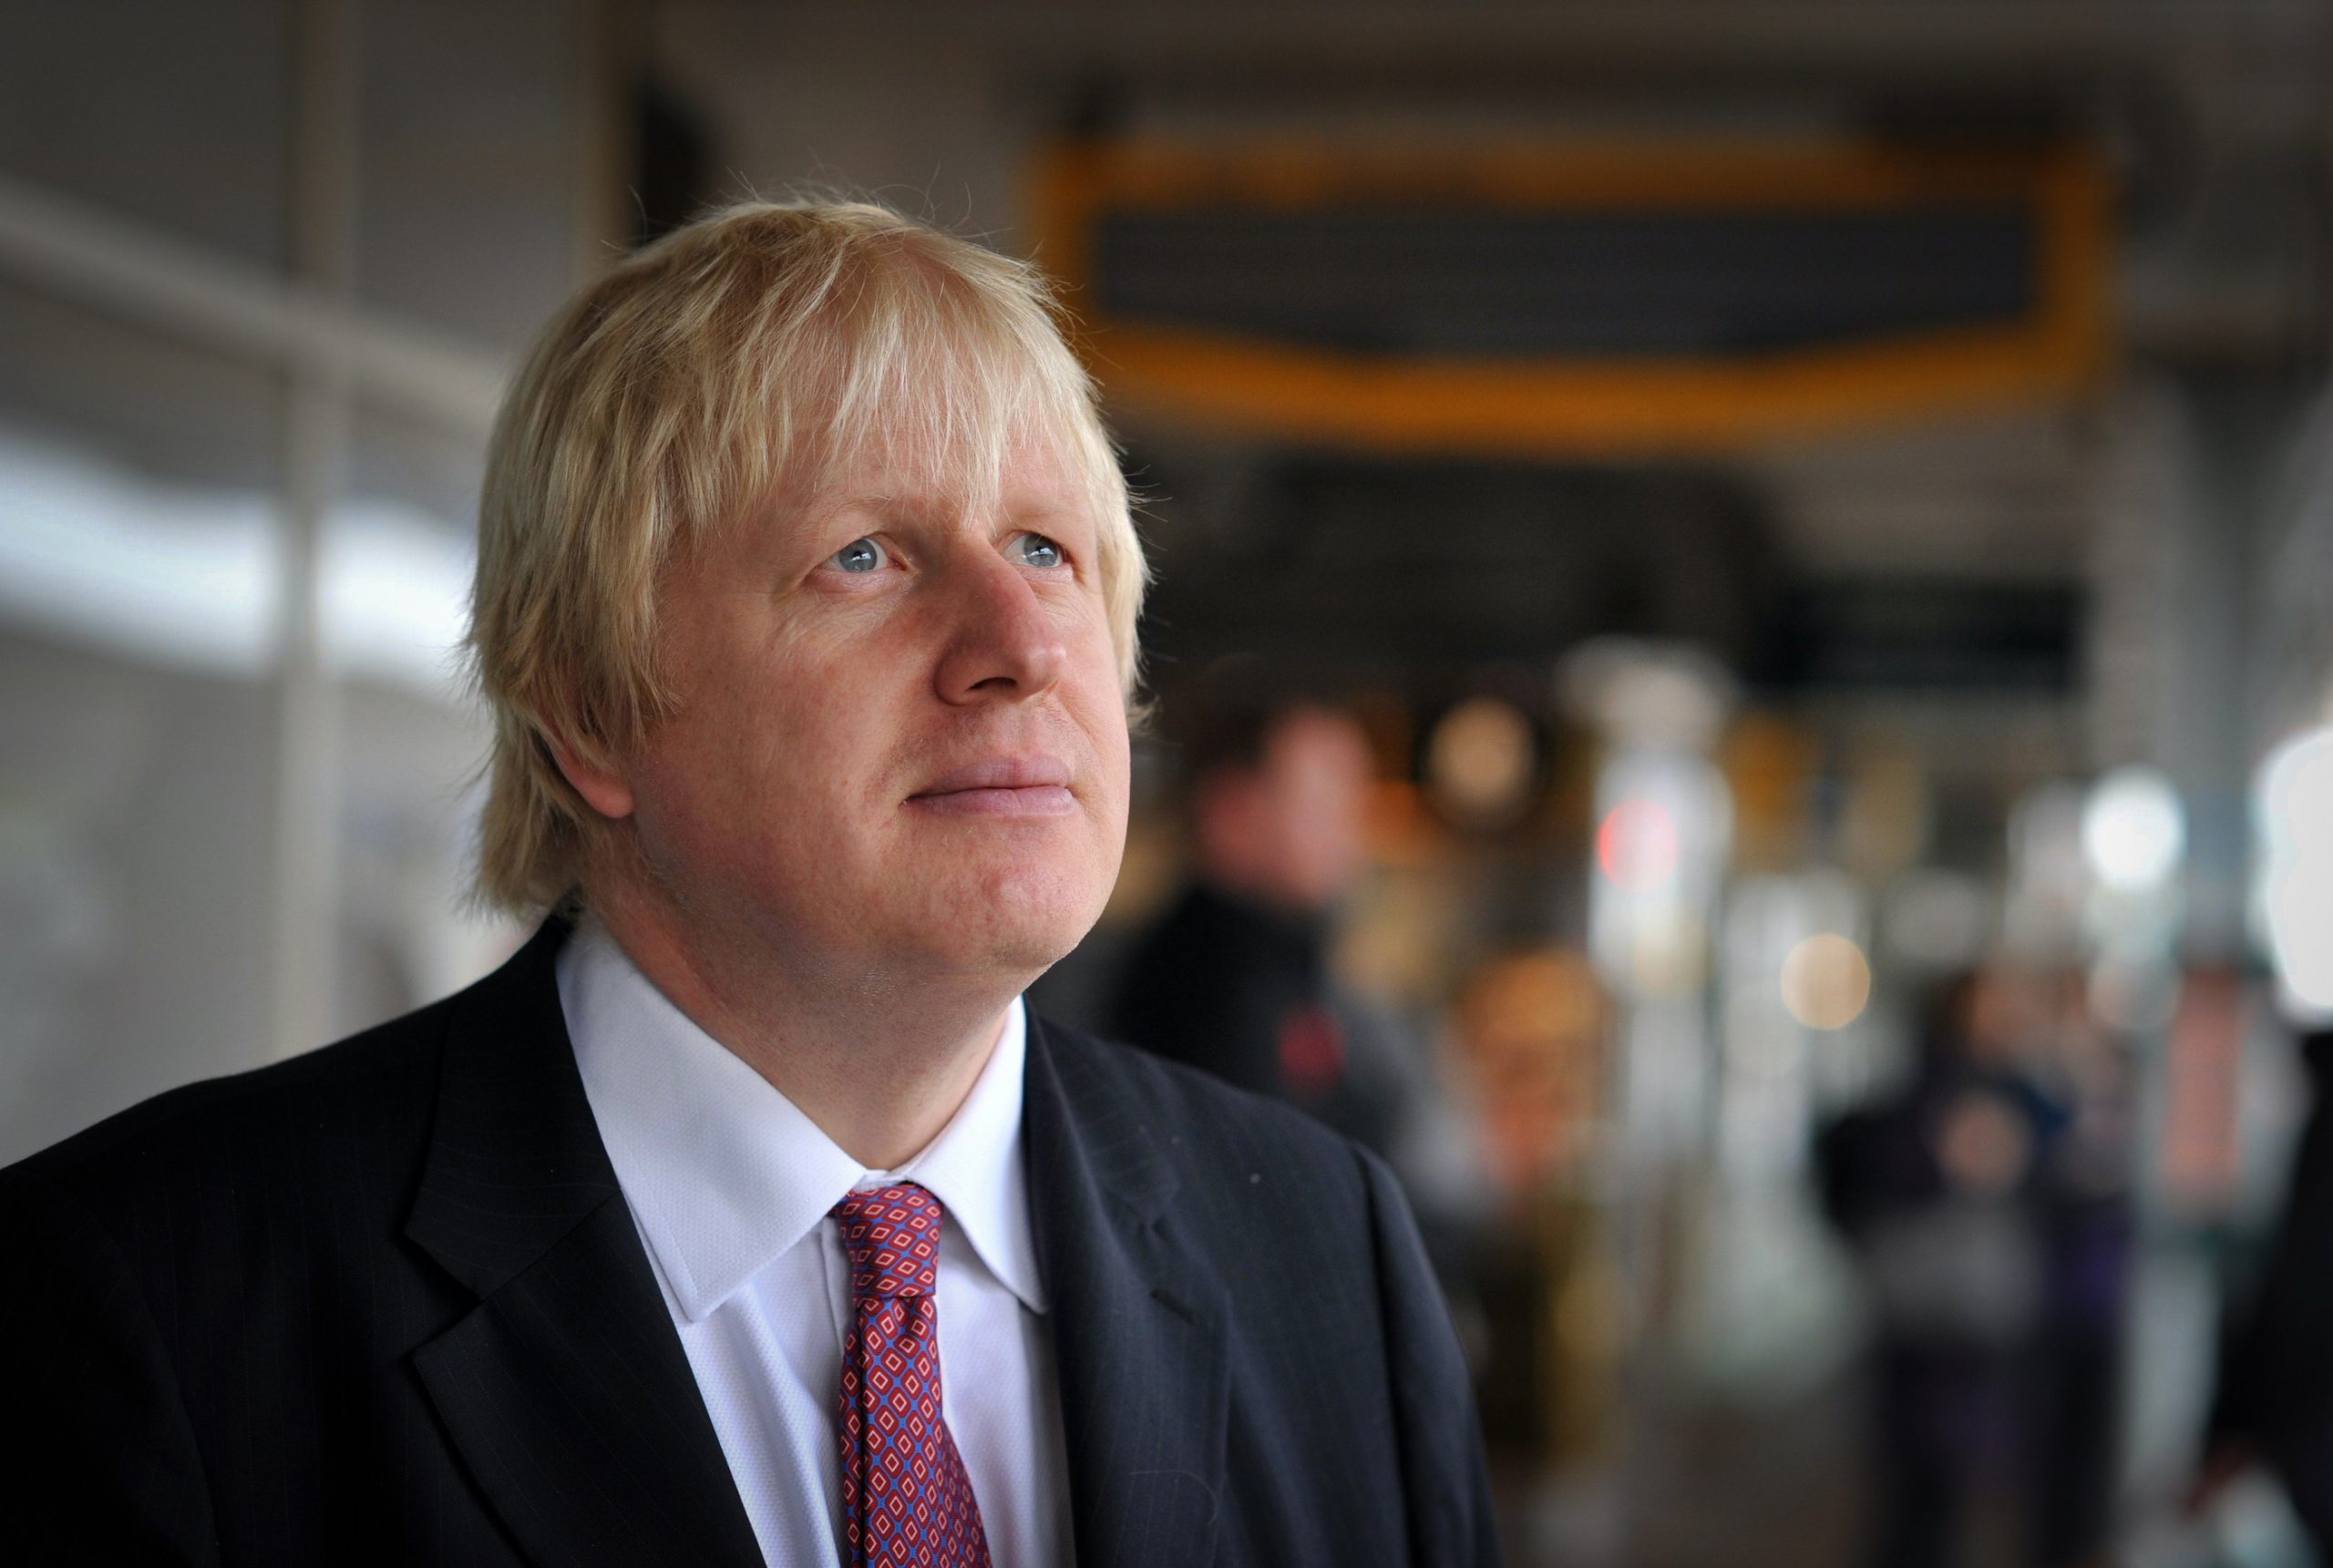 He could see into the future. Boris Johnson, 2012.